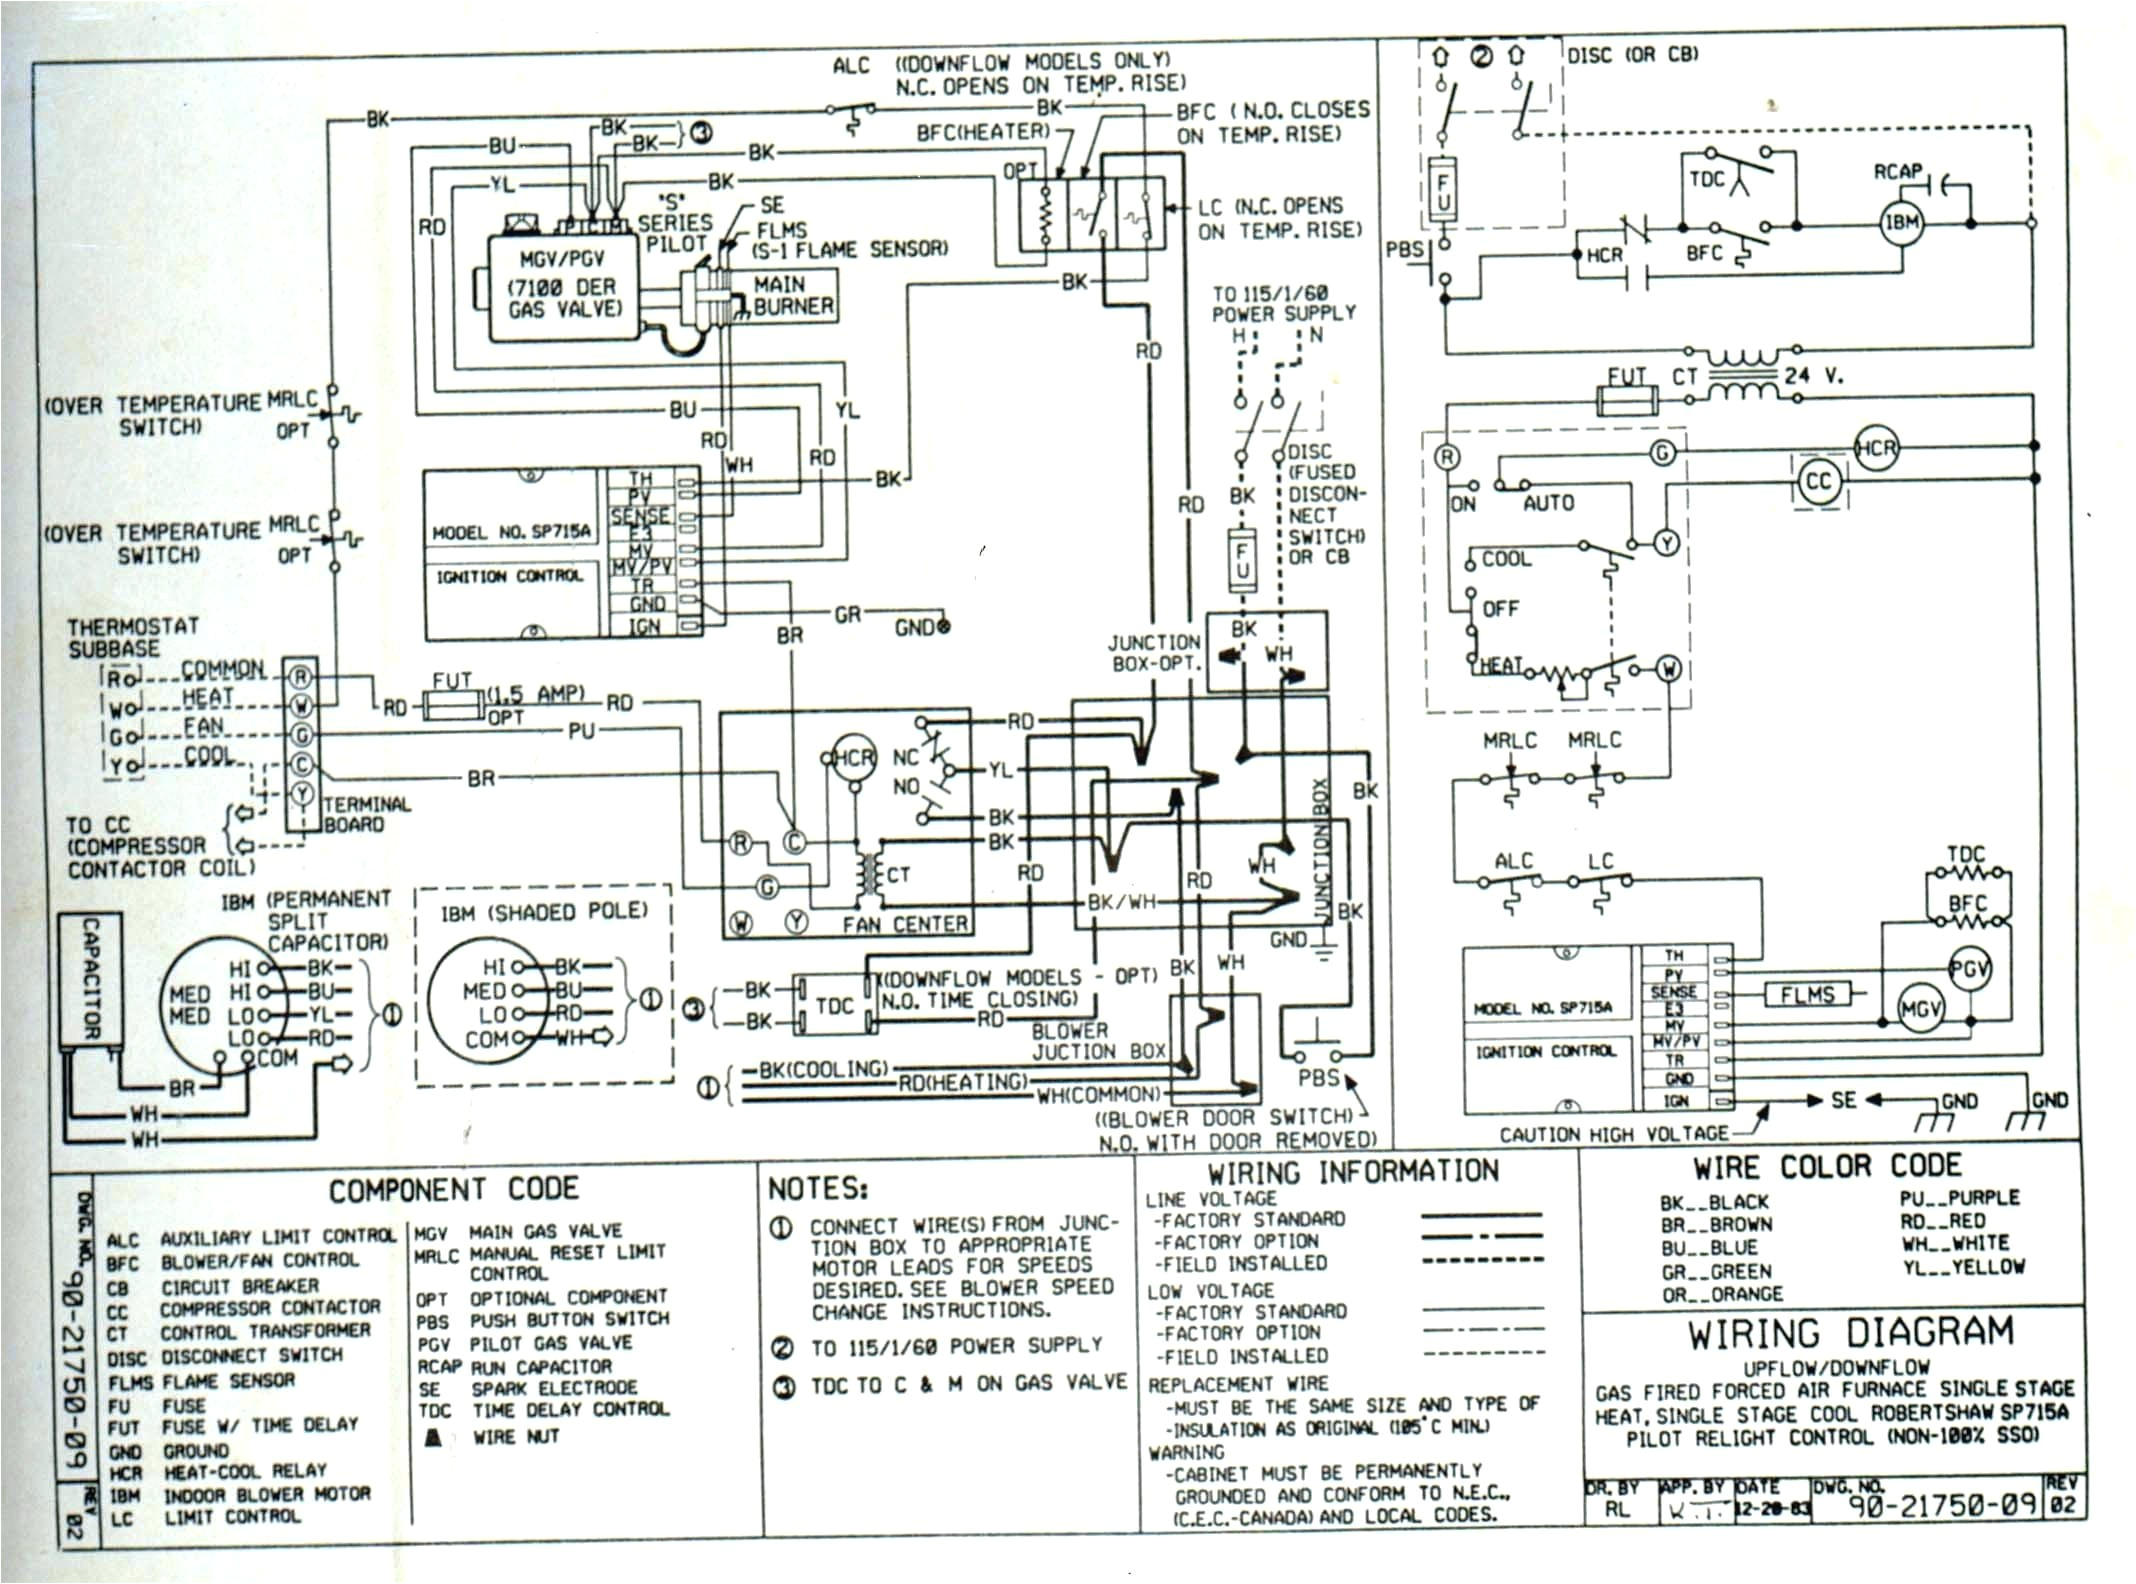 trane xe wiring diagram trane xe wiring diagram a dometic rv thermostat wiring diagram